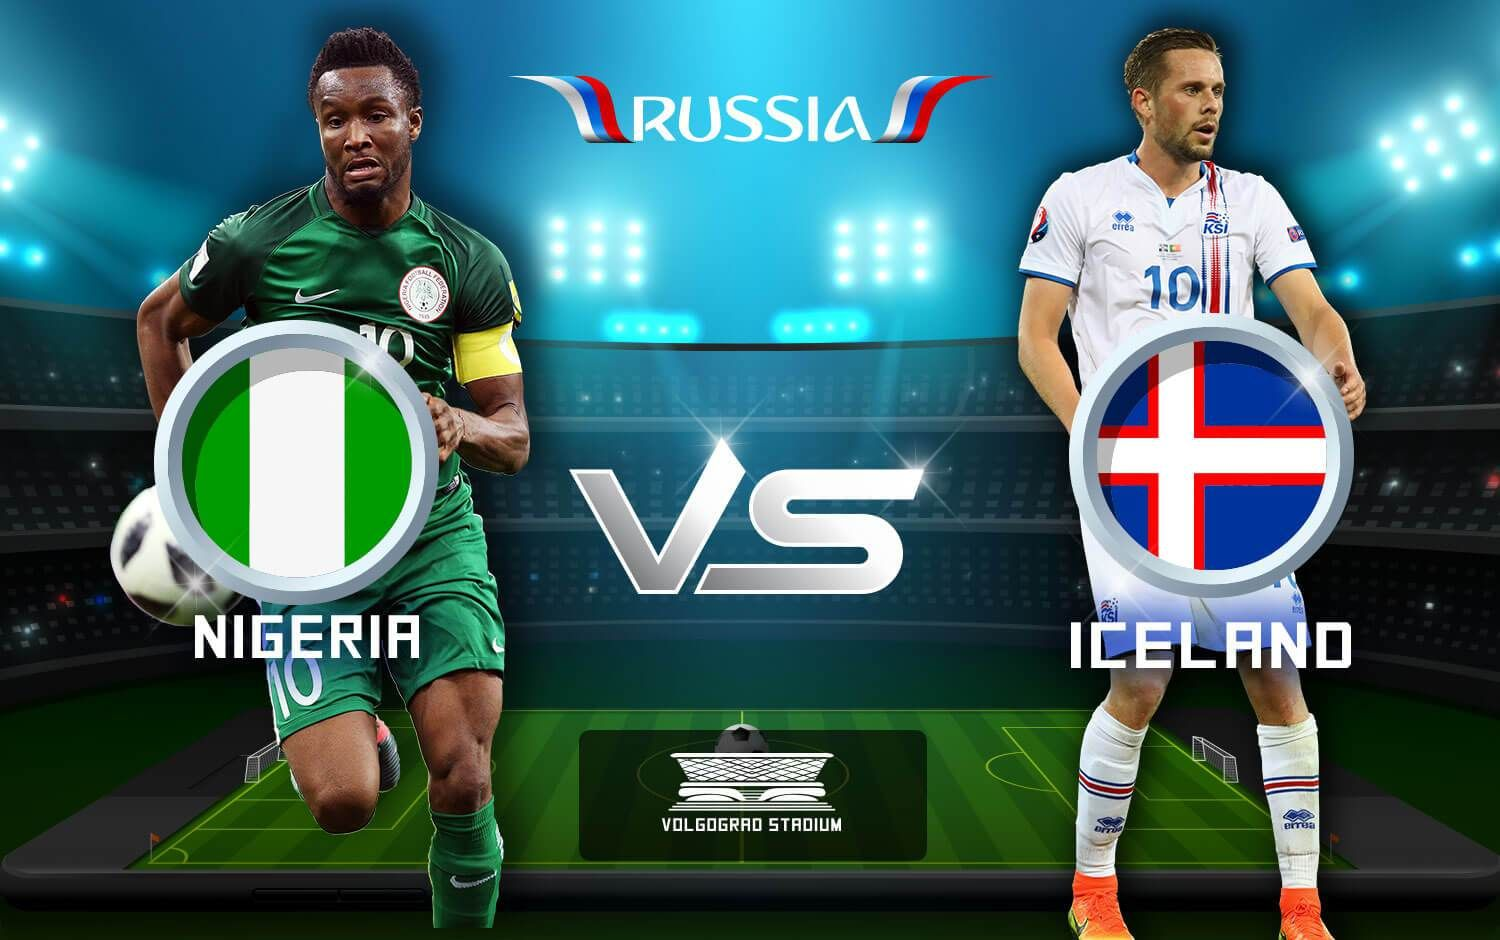 Fya Sports analyzes today's world cup matches in the